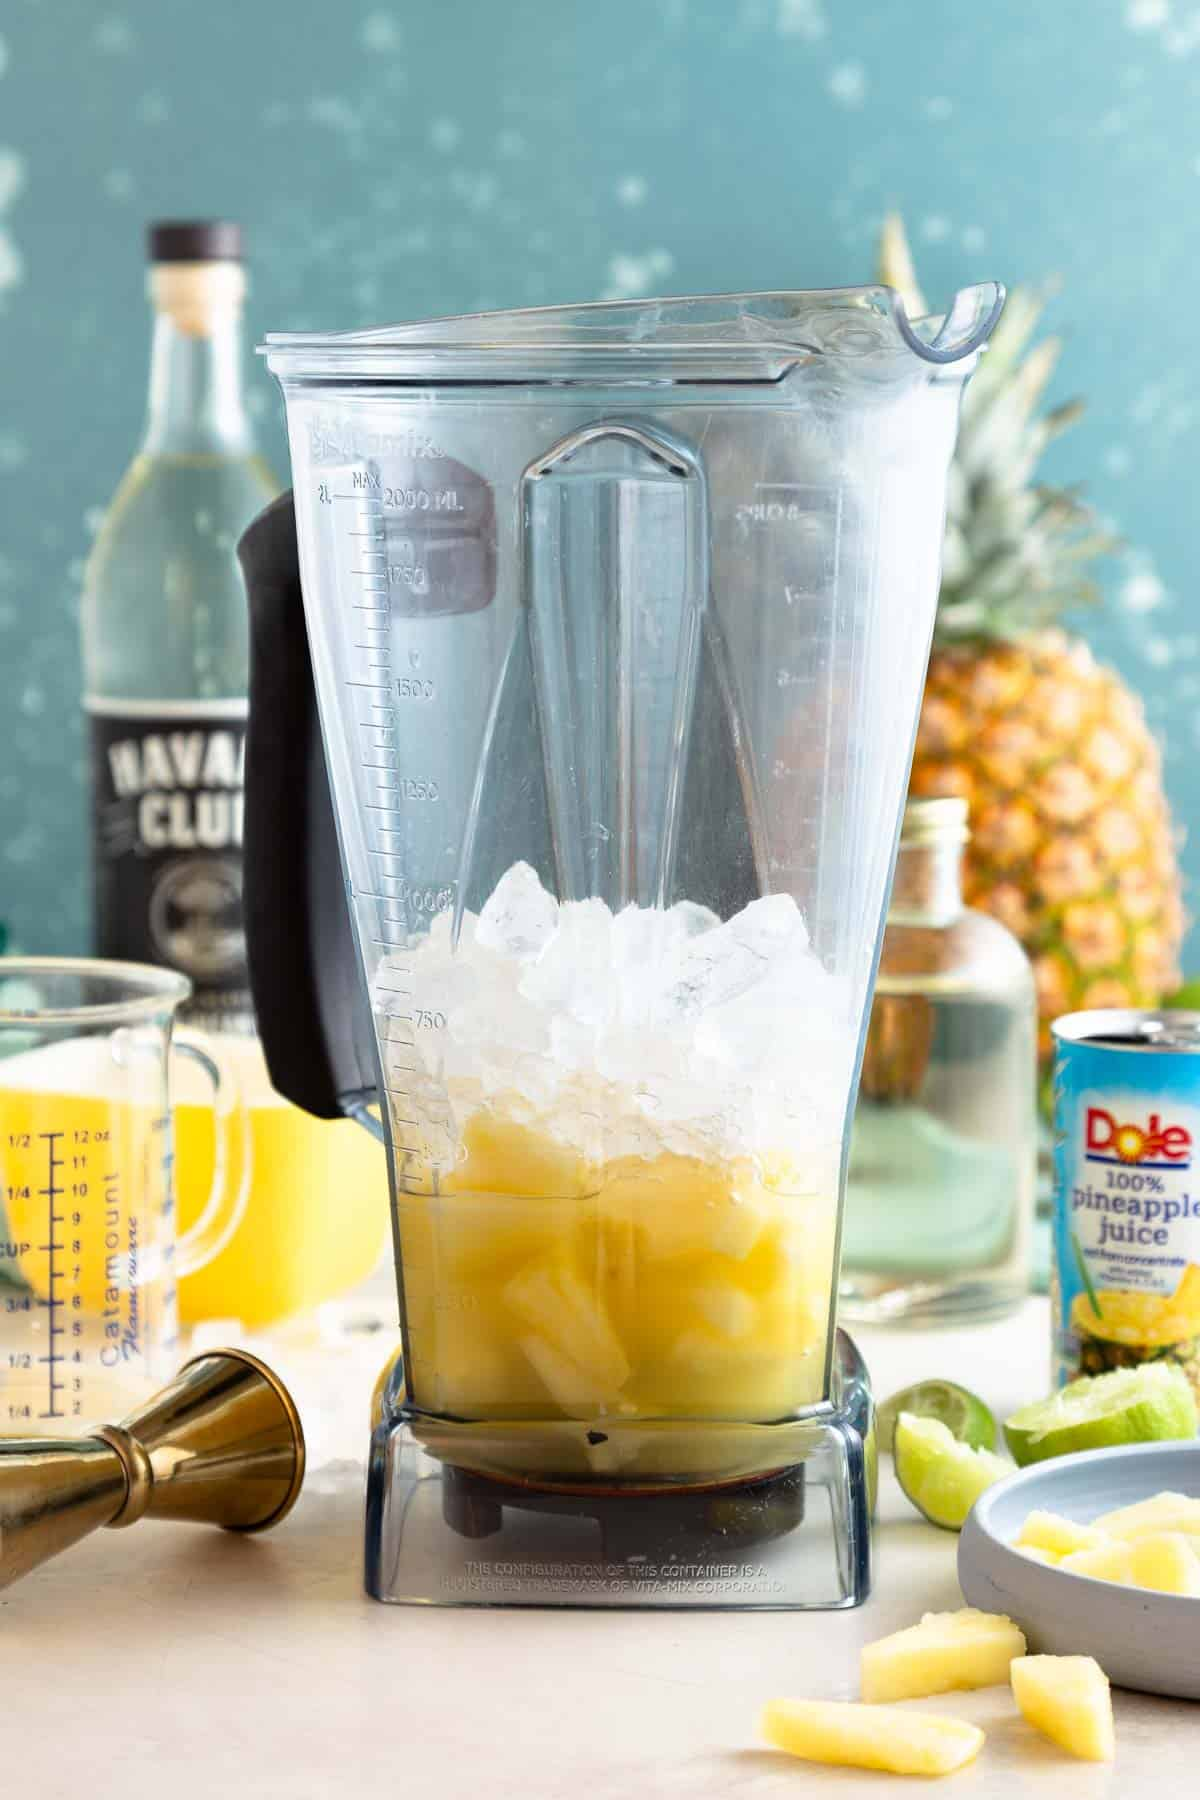 ice, pineapple, and liquid in a large blender bowl